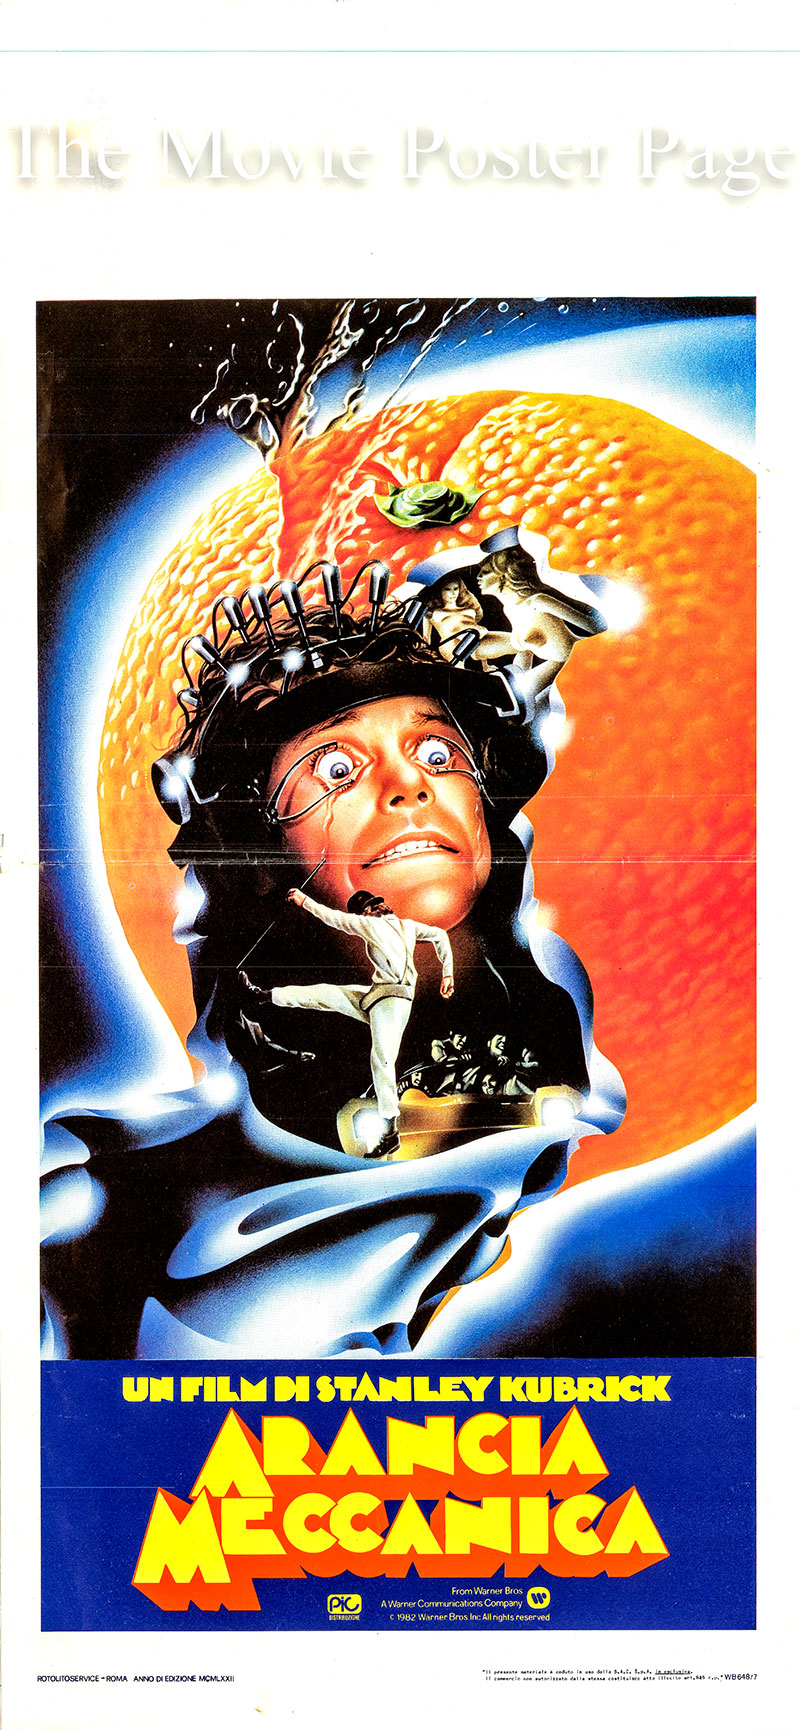 Pictured is an Italian locandina poster for a 1982 rerelease of the 1972 film <i>A Clockwork Orange</i> written and directed by Stanley Kubrick based on the 1962 Anthony Burgess novel of the same title and starring Malcolm McDowell as Alex DeLarge.